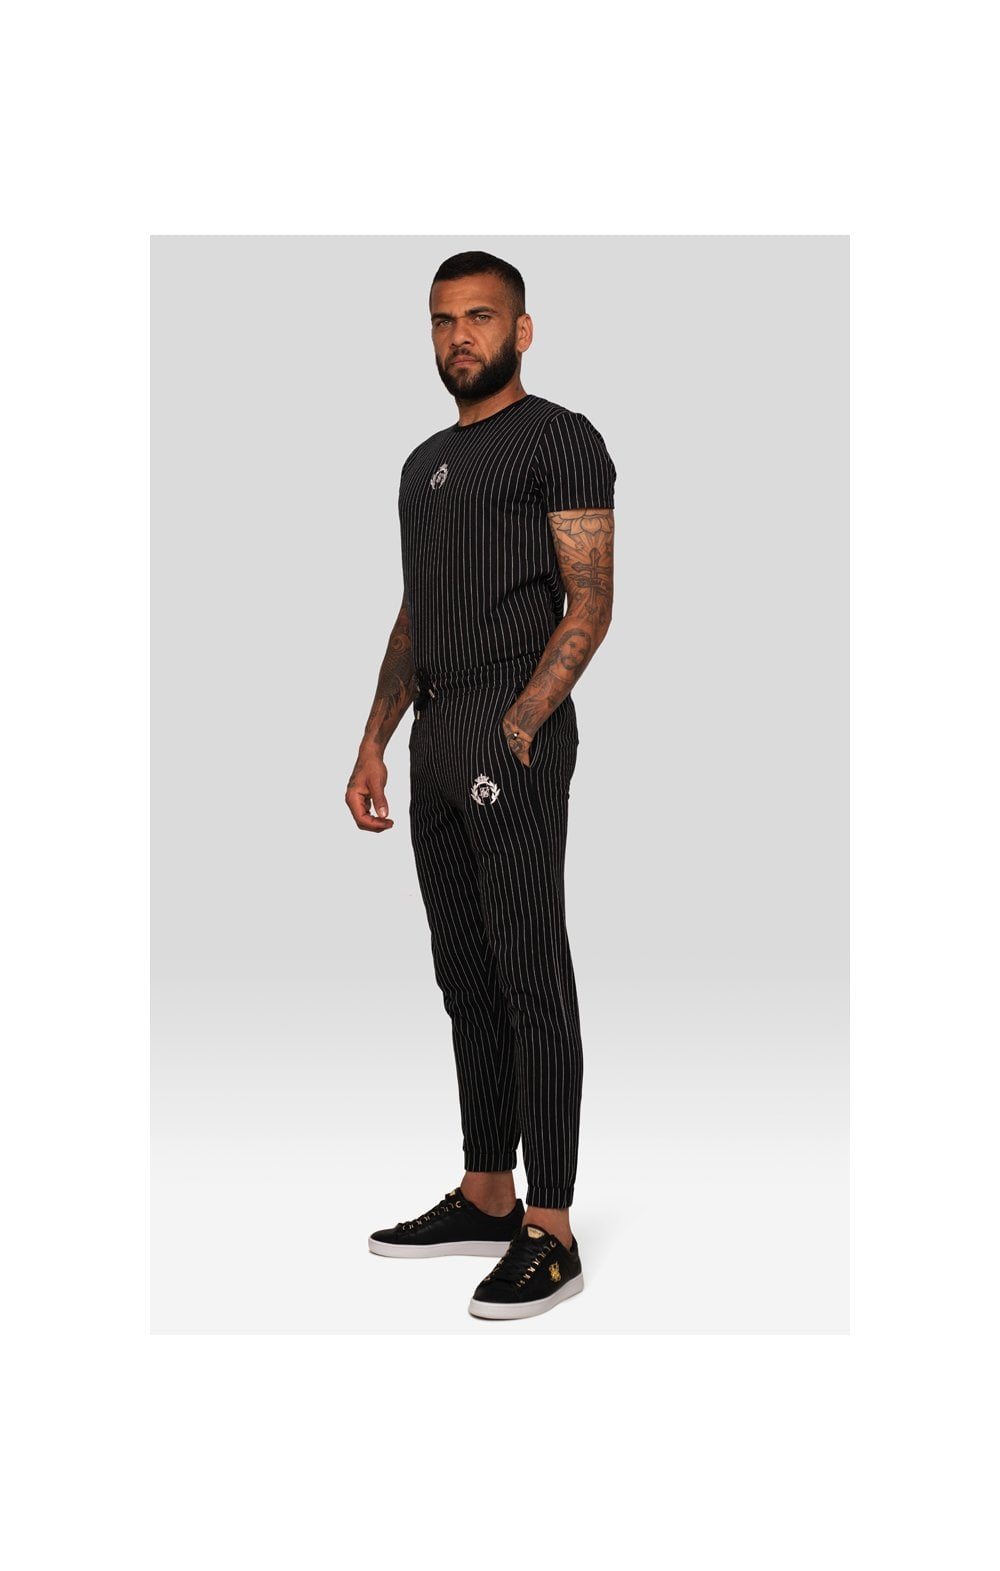 SikSilk X Dani Alves Trainings-T-Shirt Abgerundeter Saum - Schwarzweiss (2)